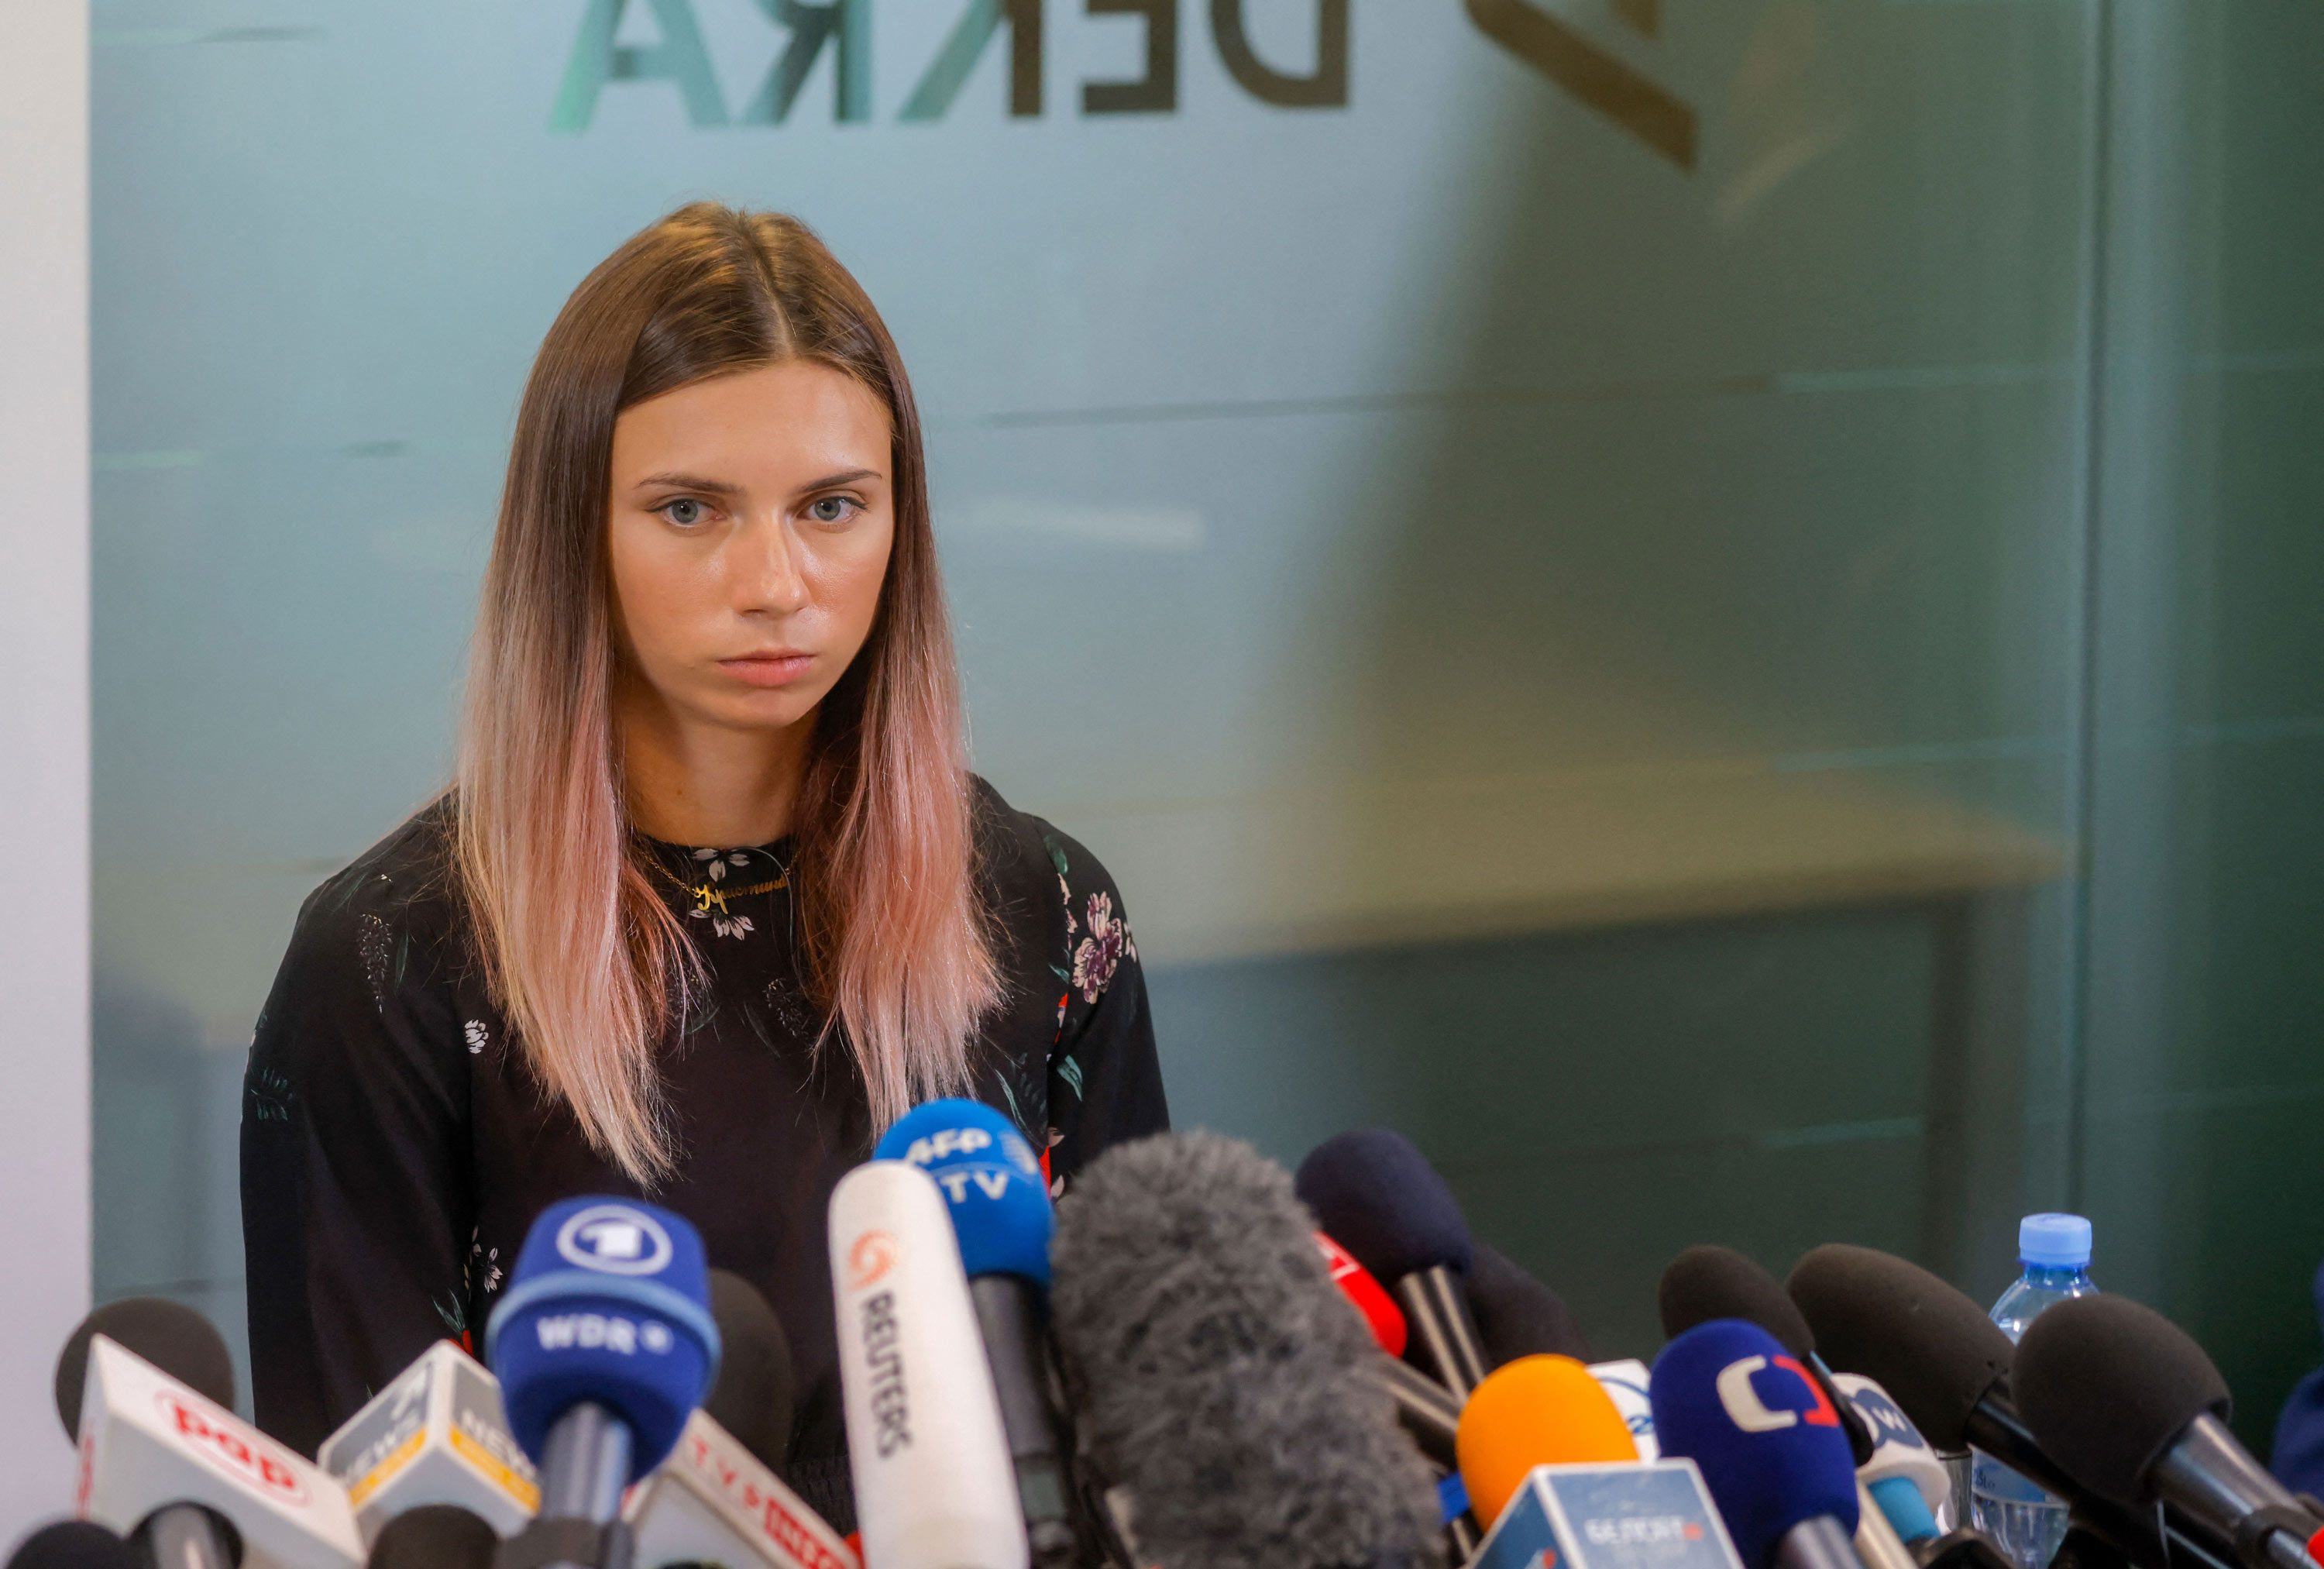 Belarusian Olympic athlete Kristina Timanovskaya addresses a press conference on August 5 in Warsaw, Poland.